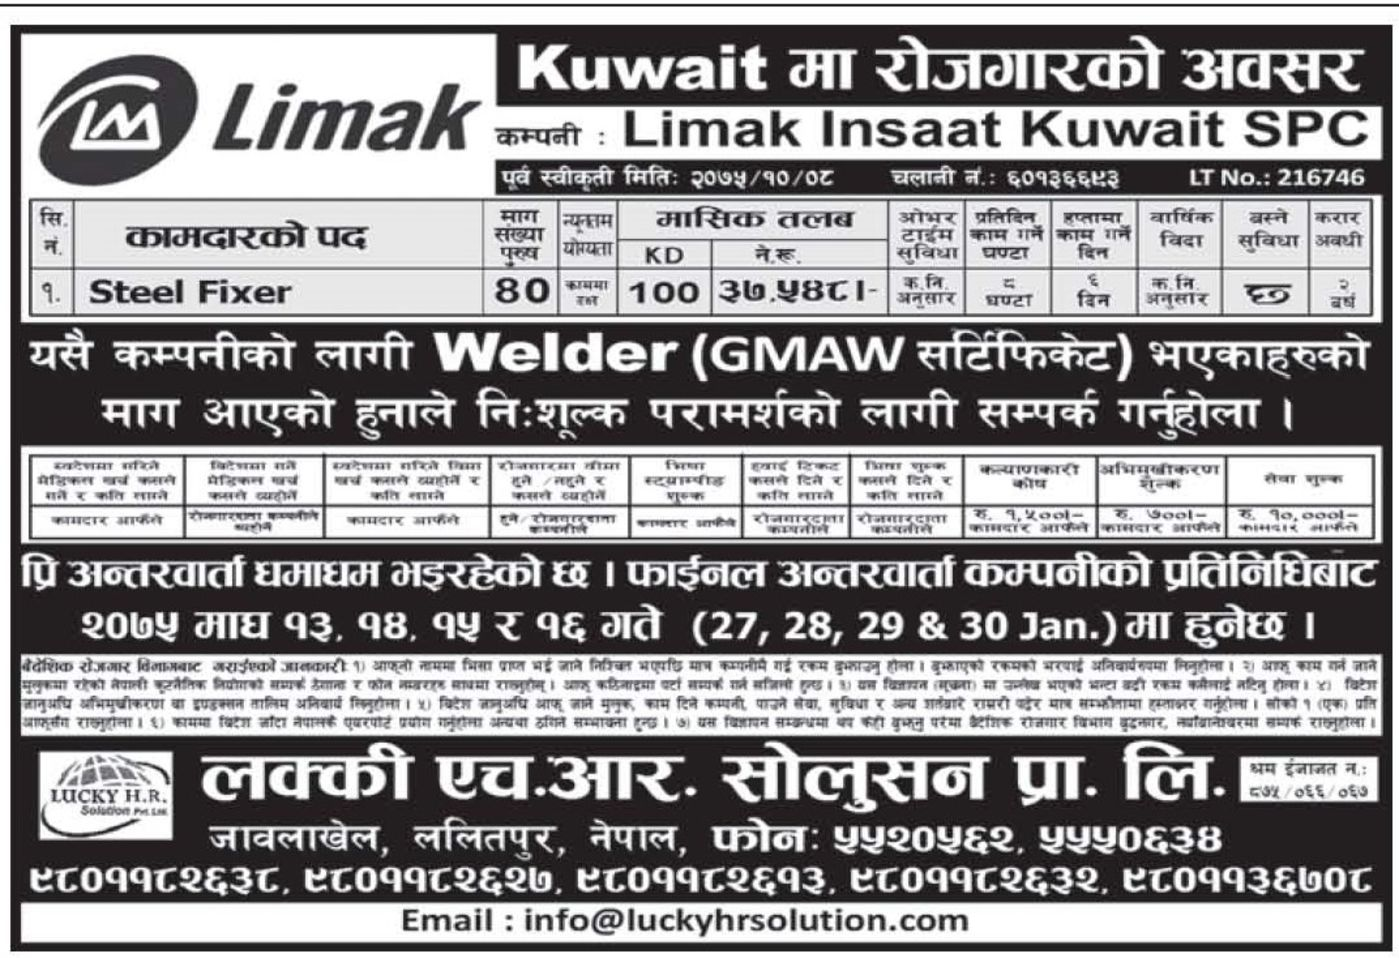 Jobs Nepal - vacancy - Labor - Limak Insaat Kuwait Spc